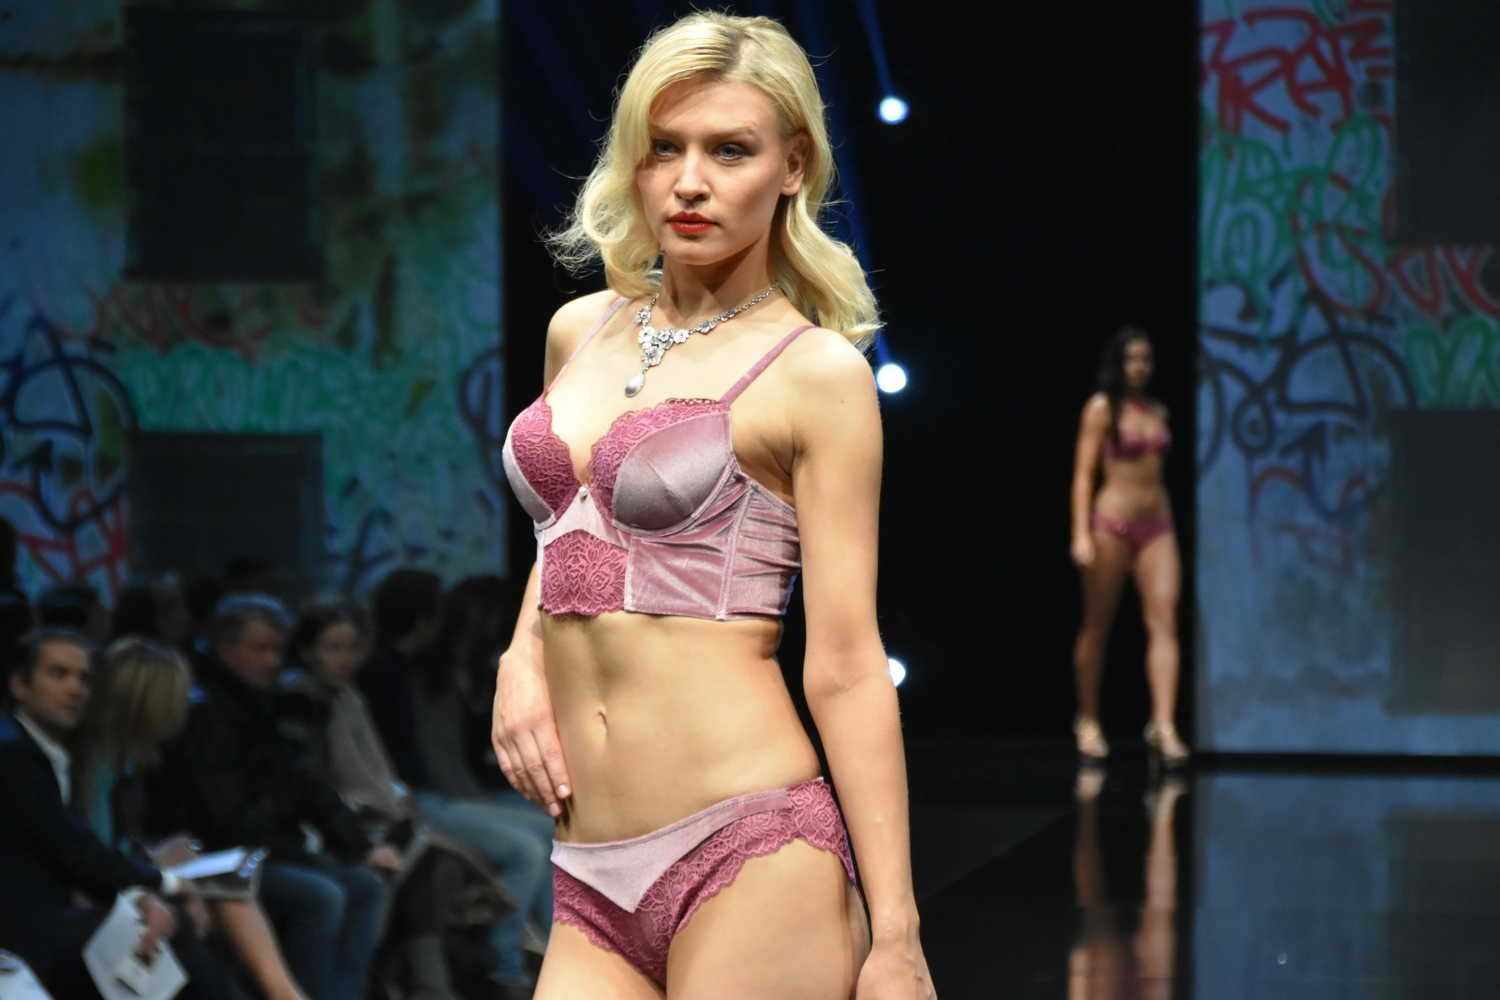 Salon De La Randonnée 2017 Paris Salon International De La Lingerie Paris 2017 Un Aperçu